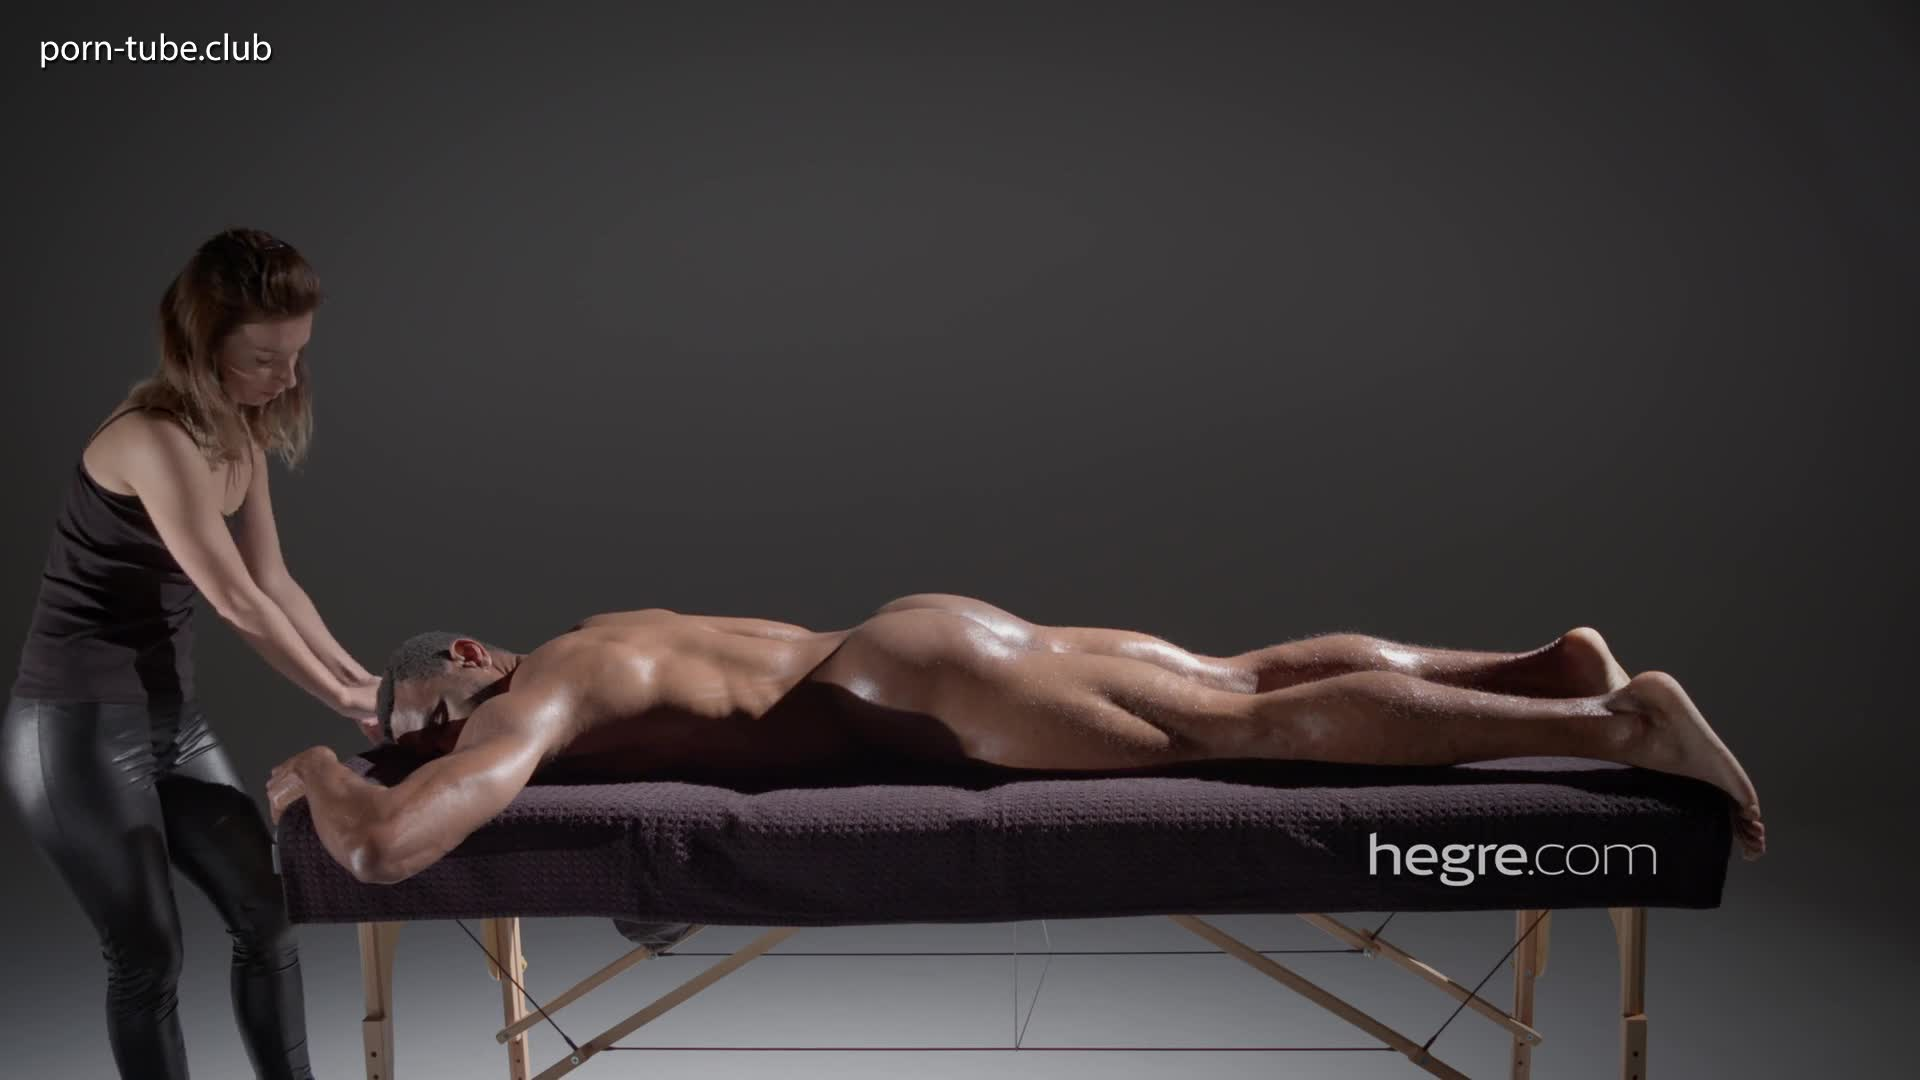 Hegre-Art 18.05.22 Tantric Therapy Massage